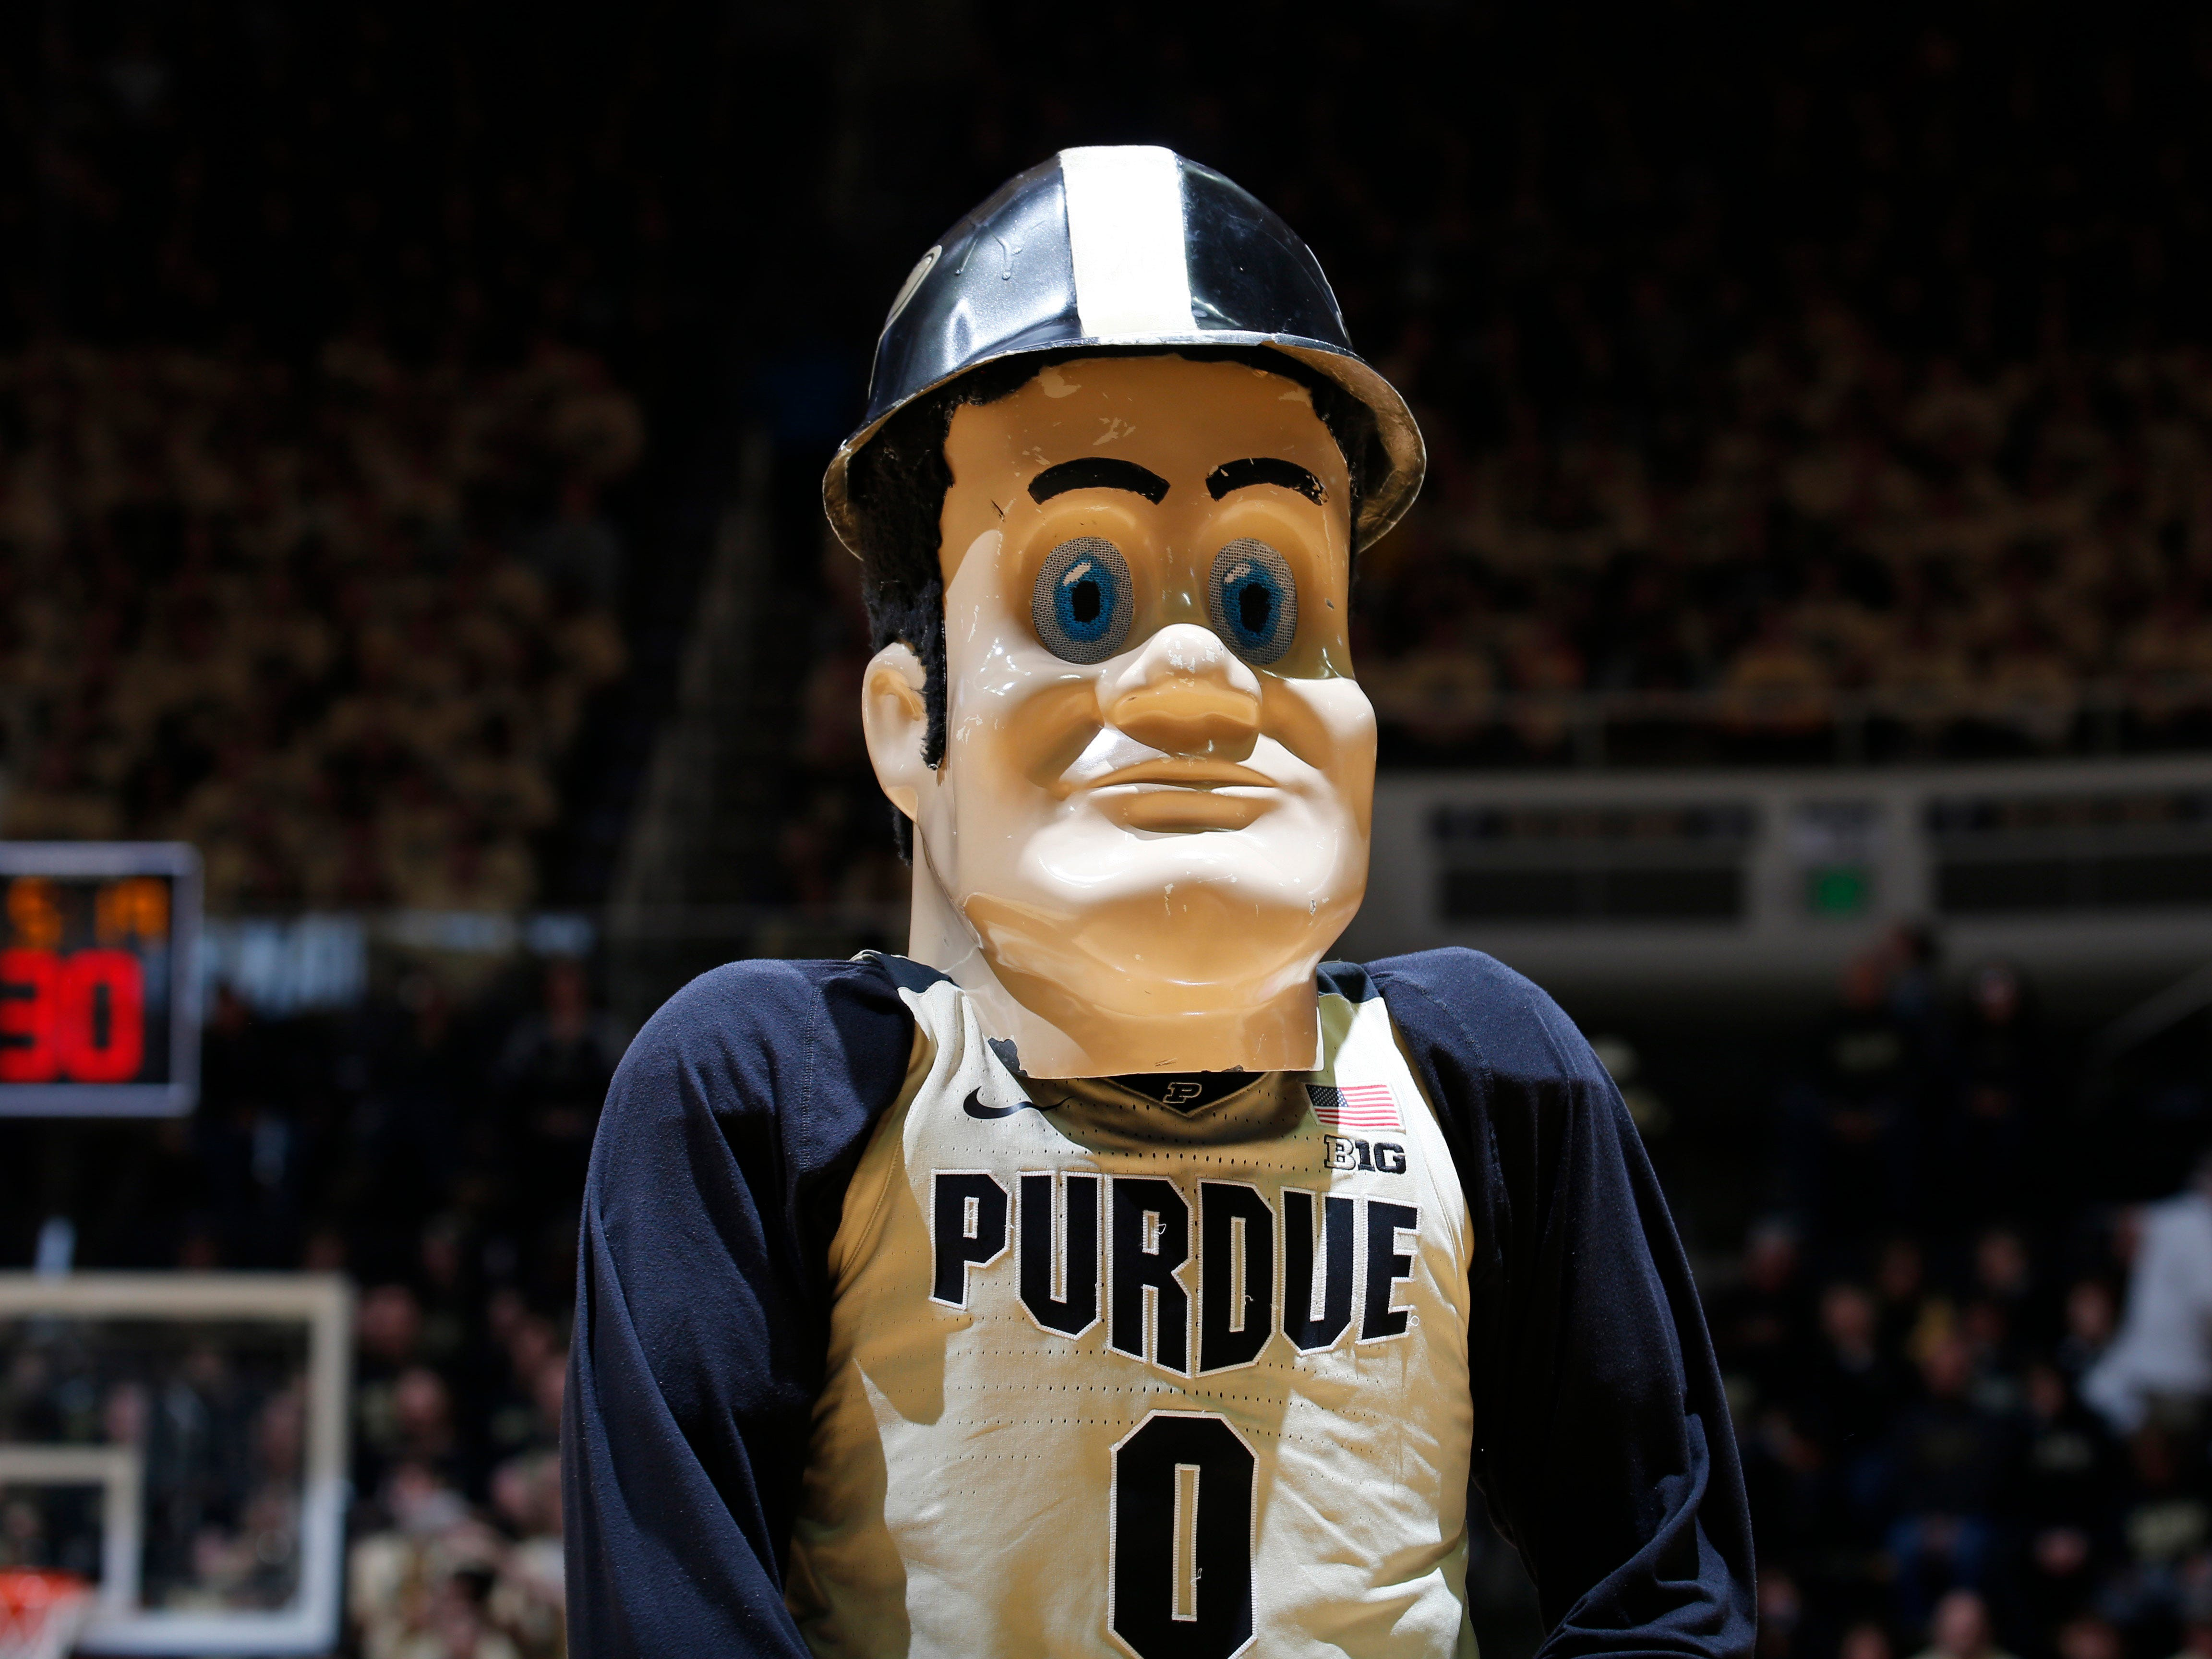 Purdue Boilermakers mascot Purdue Pete has a set of eyes that'll send a shiver down your spine.